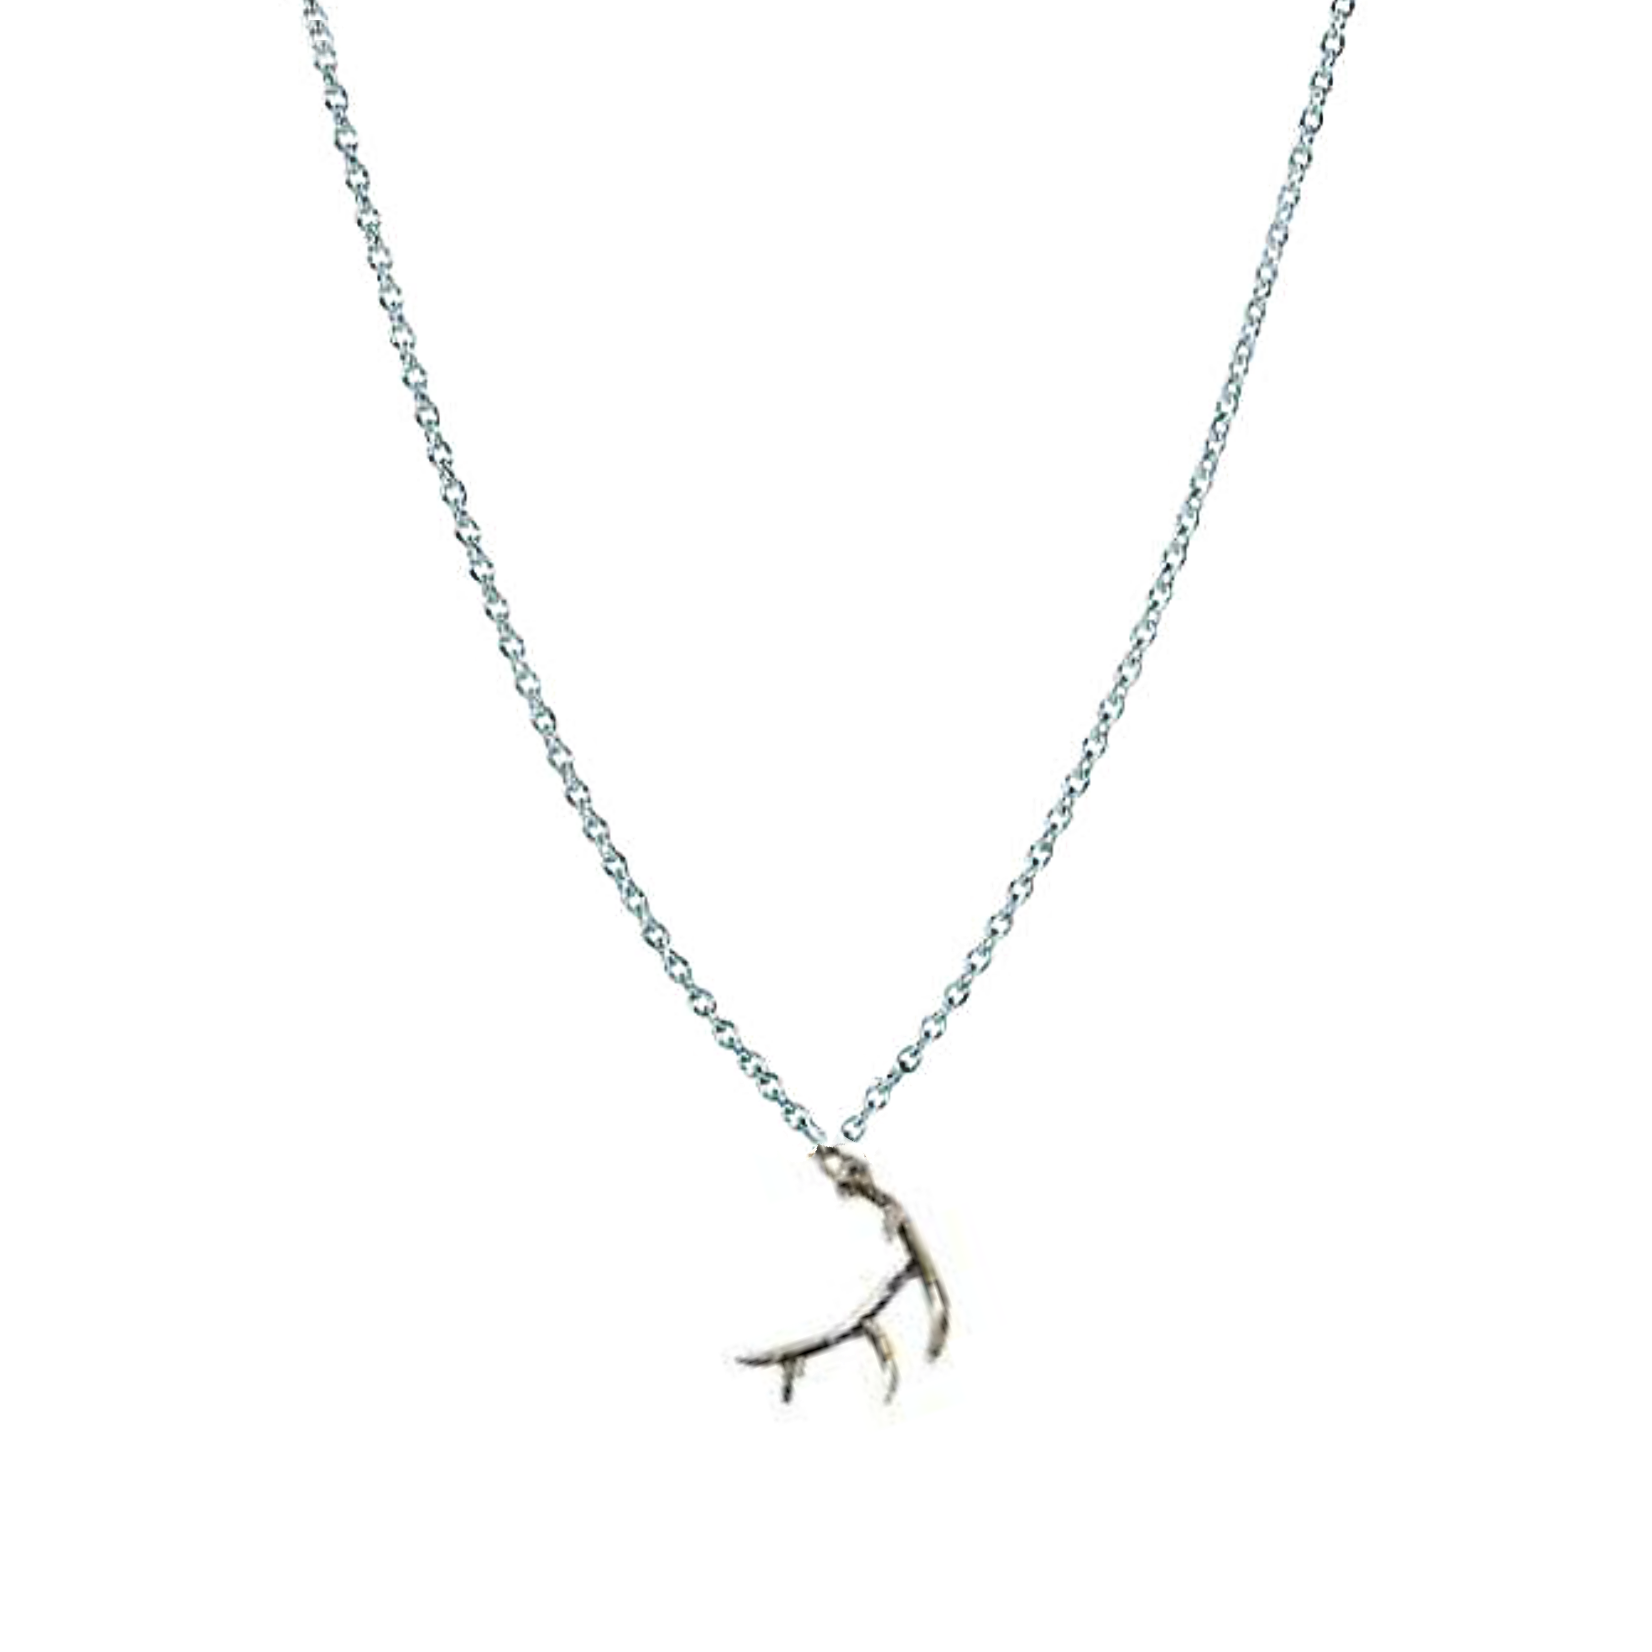 The Stag Necklace from The KIE Kollection